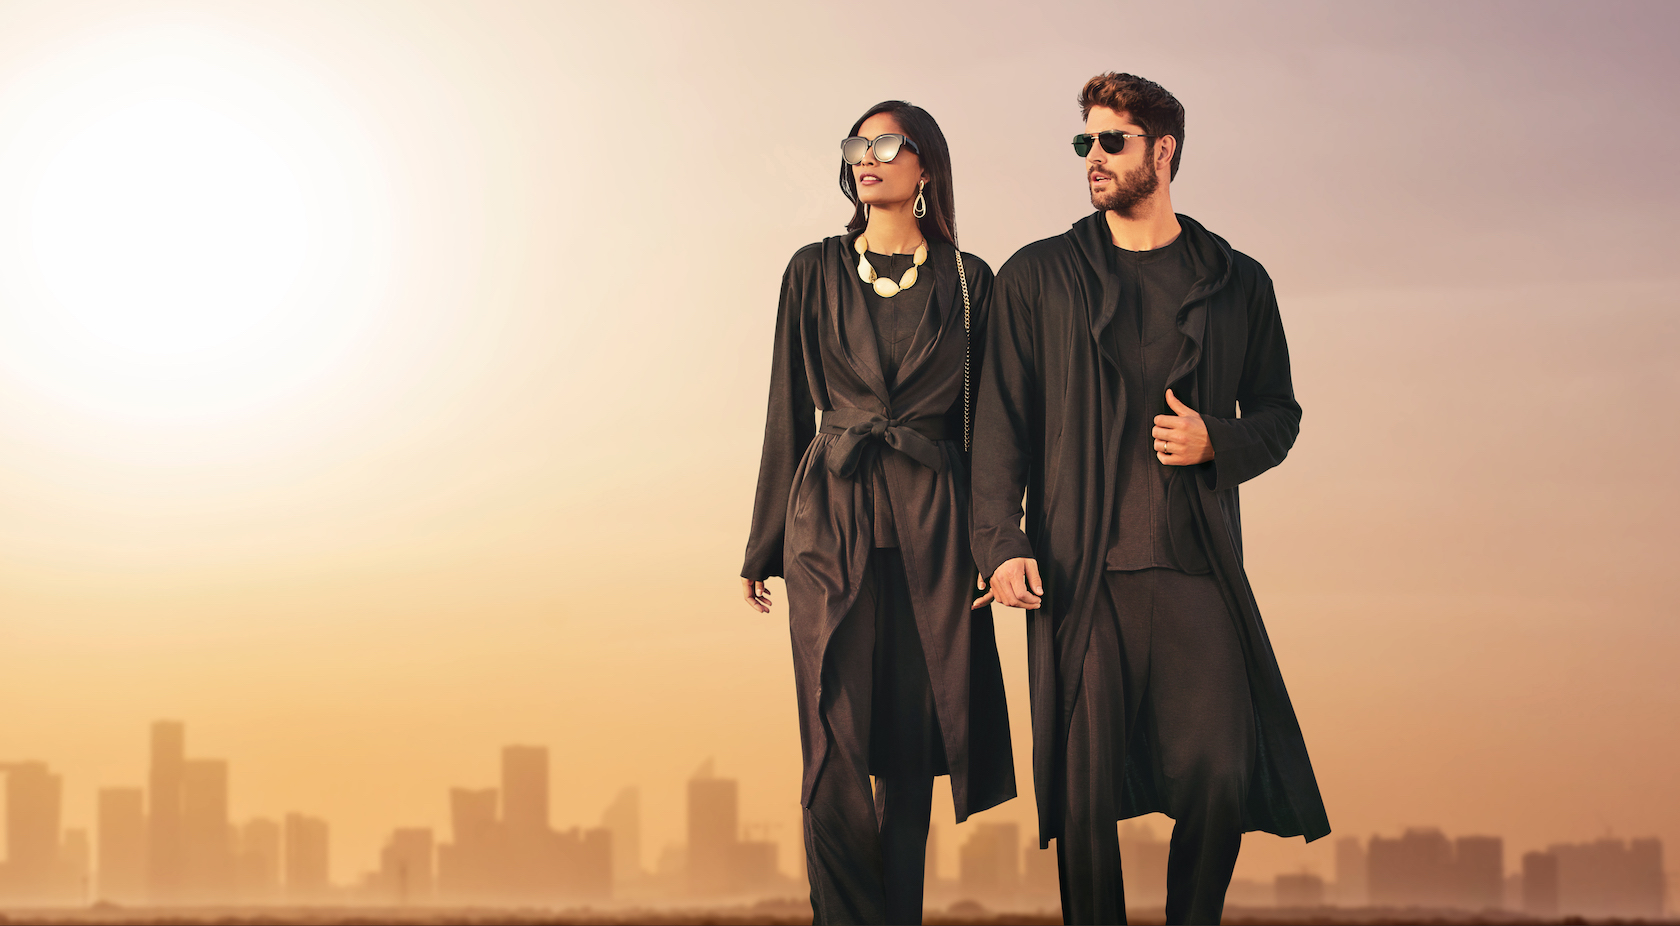 Etihad launches Loungewear collection at the iconic Louvre Abu Dhabi - Alvinology